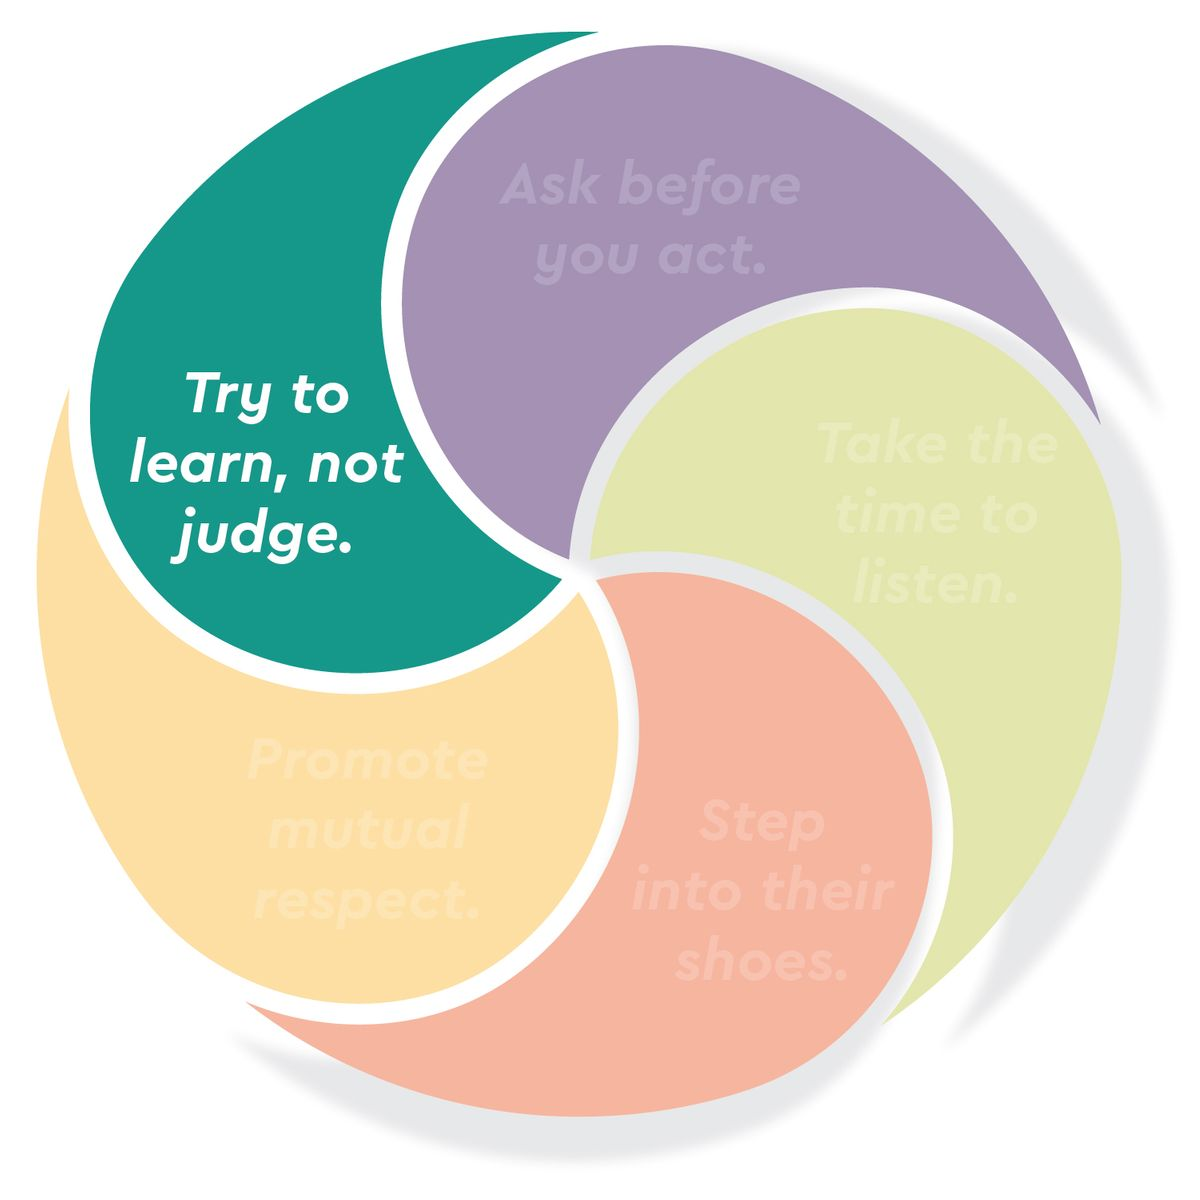 Try to learn, not judge